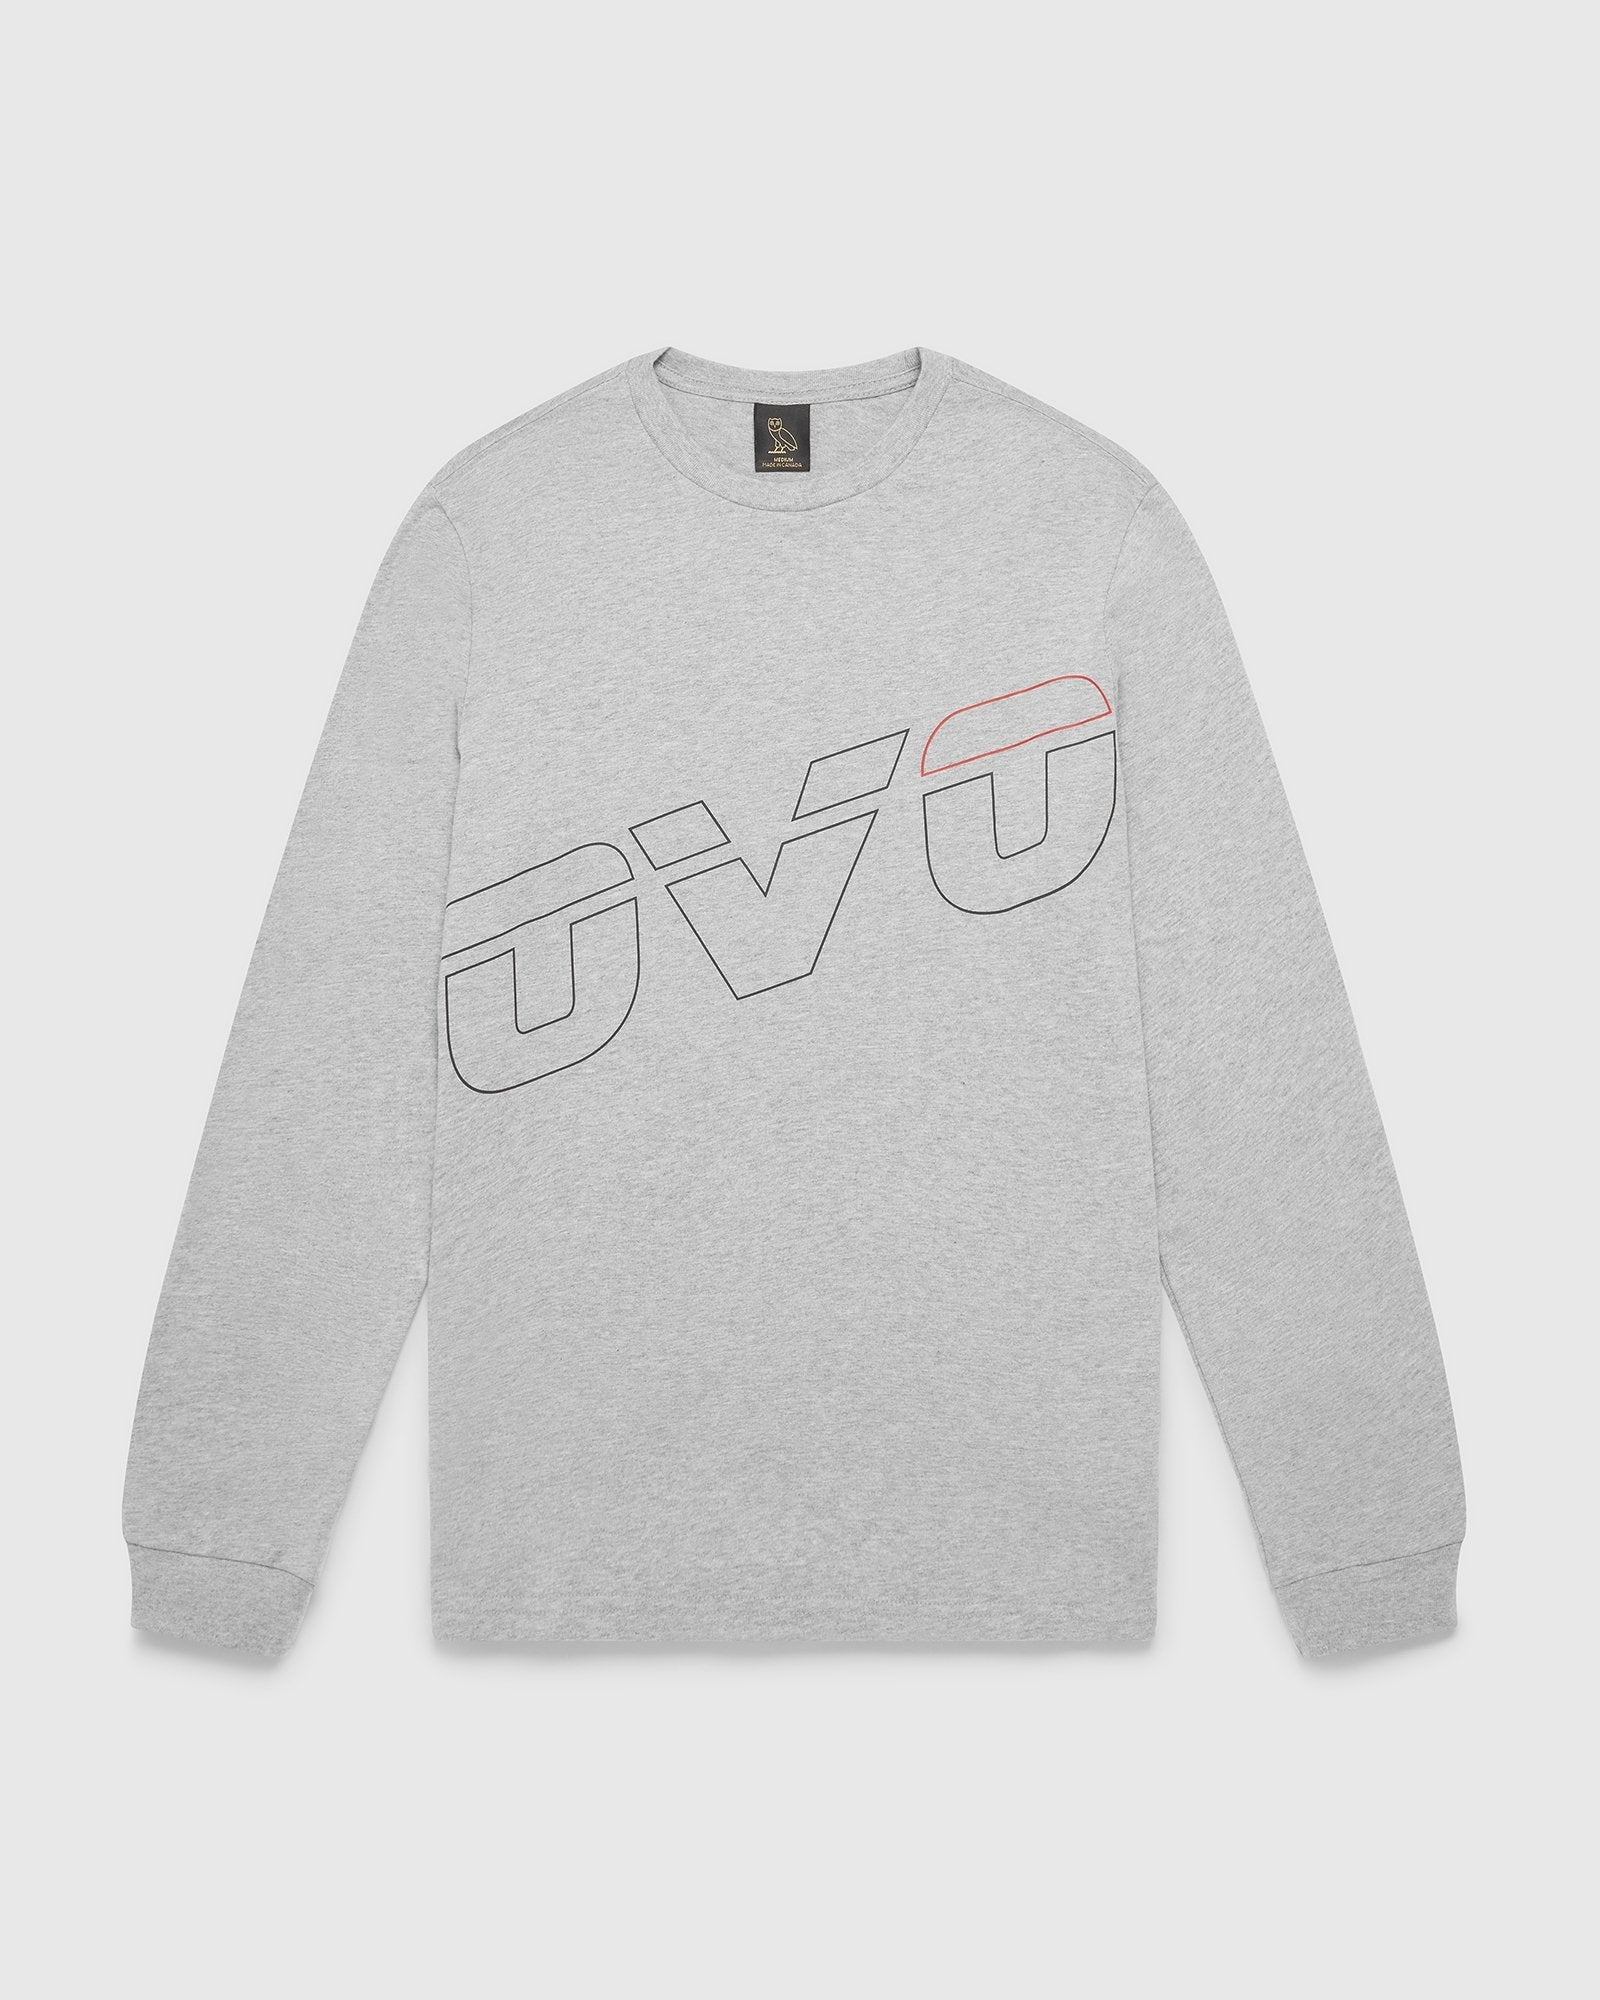 RUNNER REFLECTOR LONGSLEEVE T-SHIRT - HEATHER GREY IMAGE #1